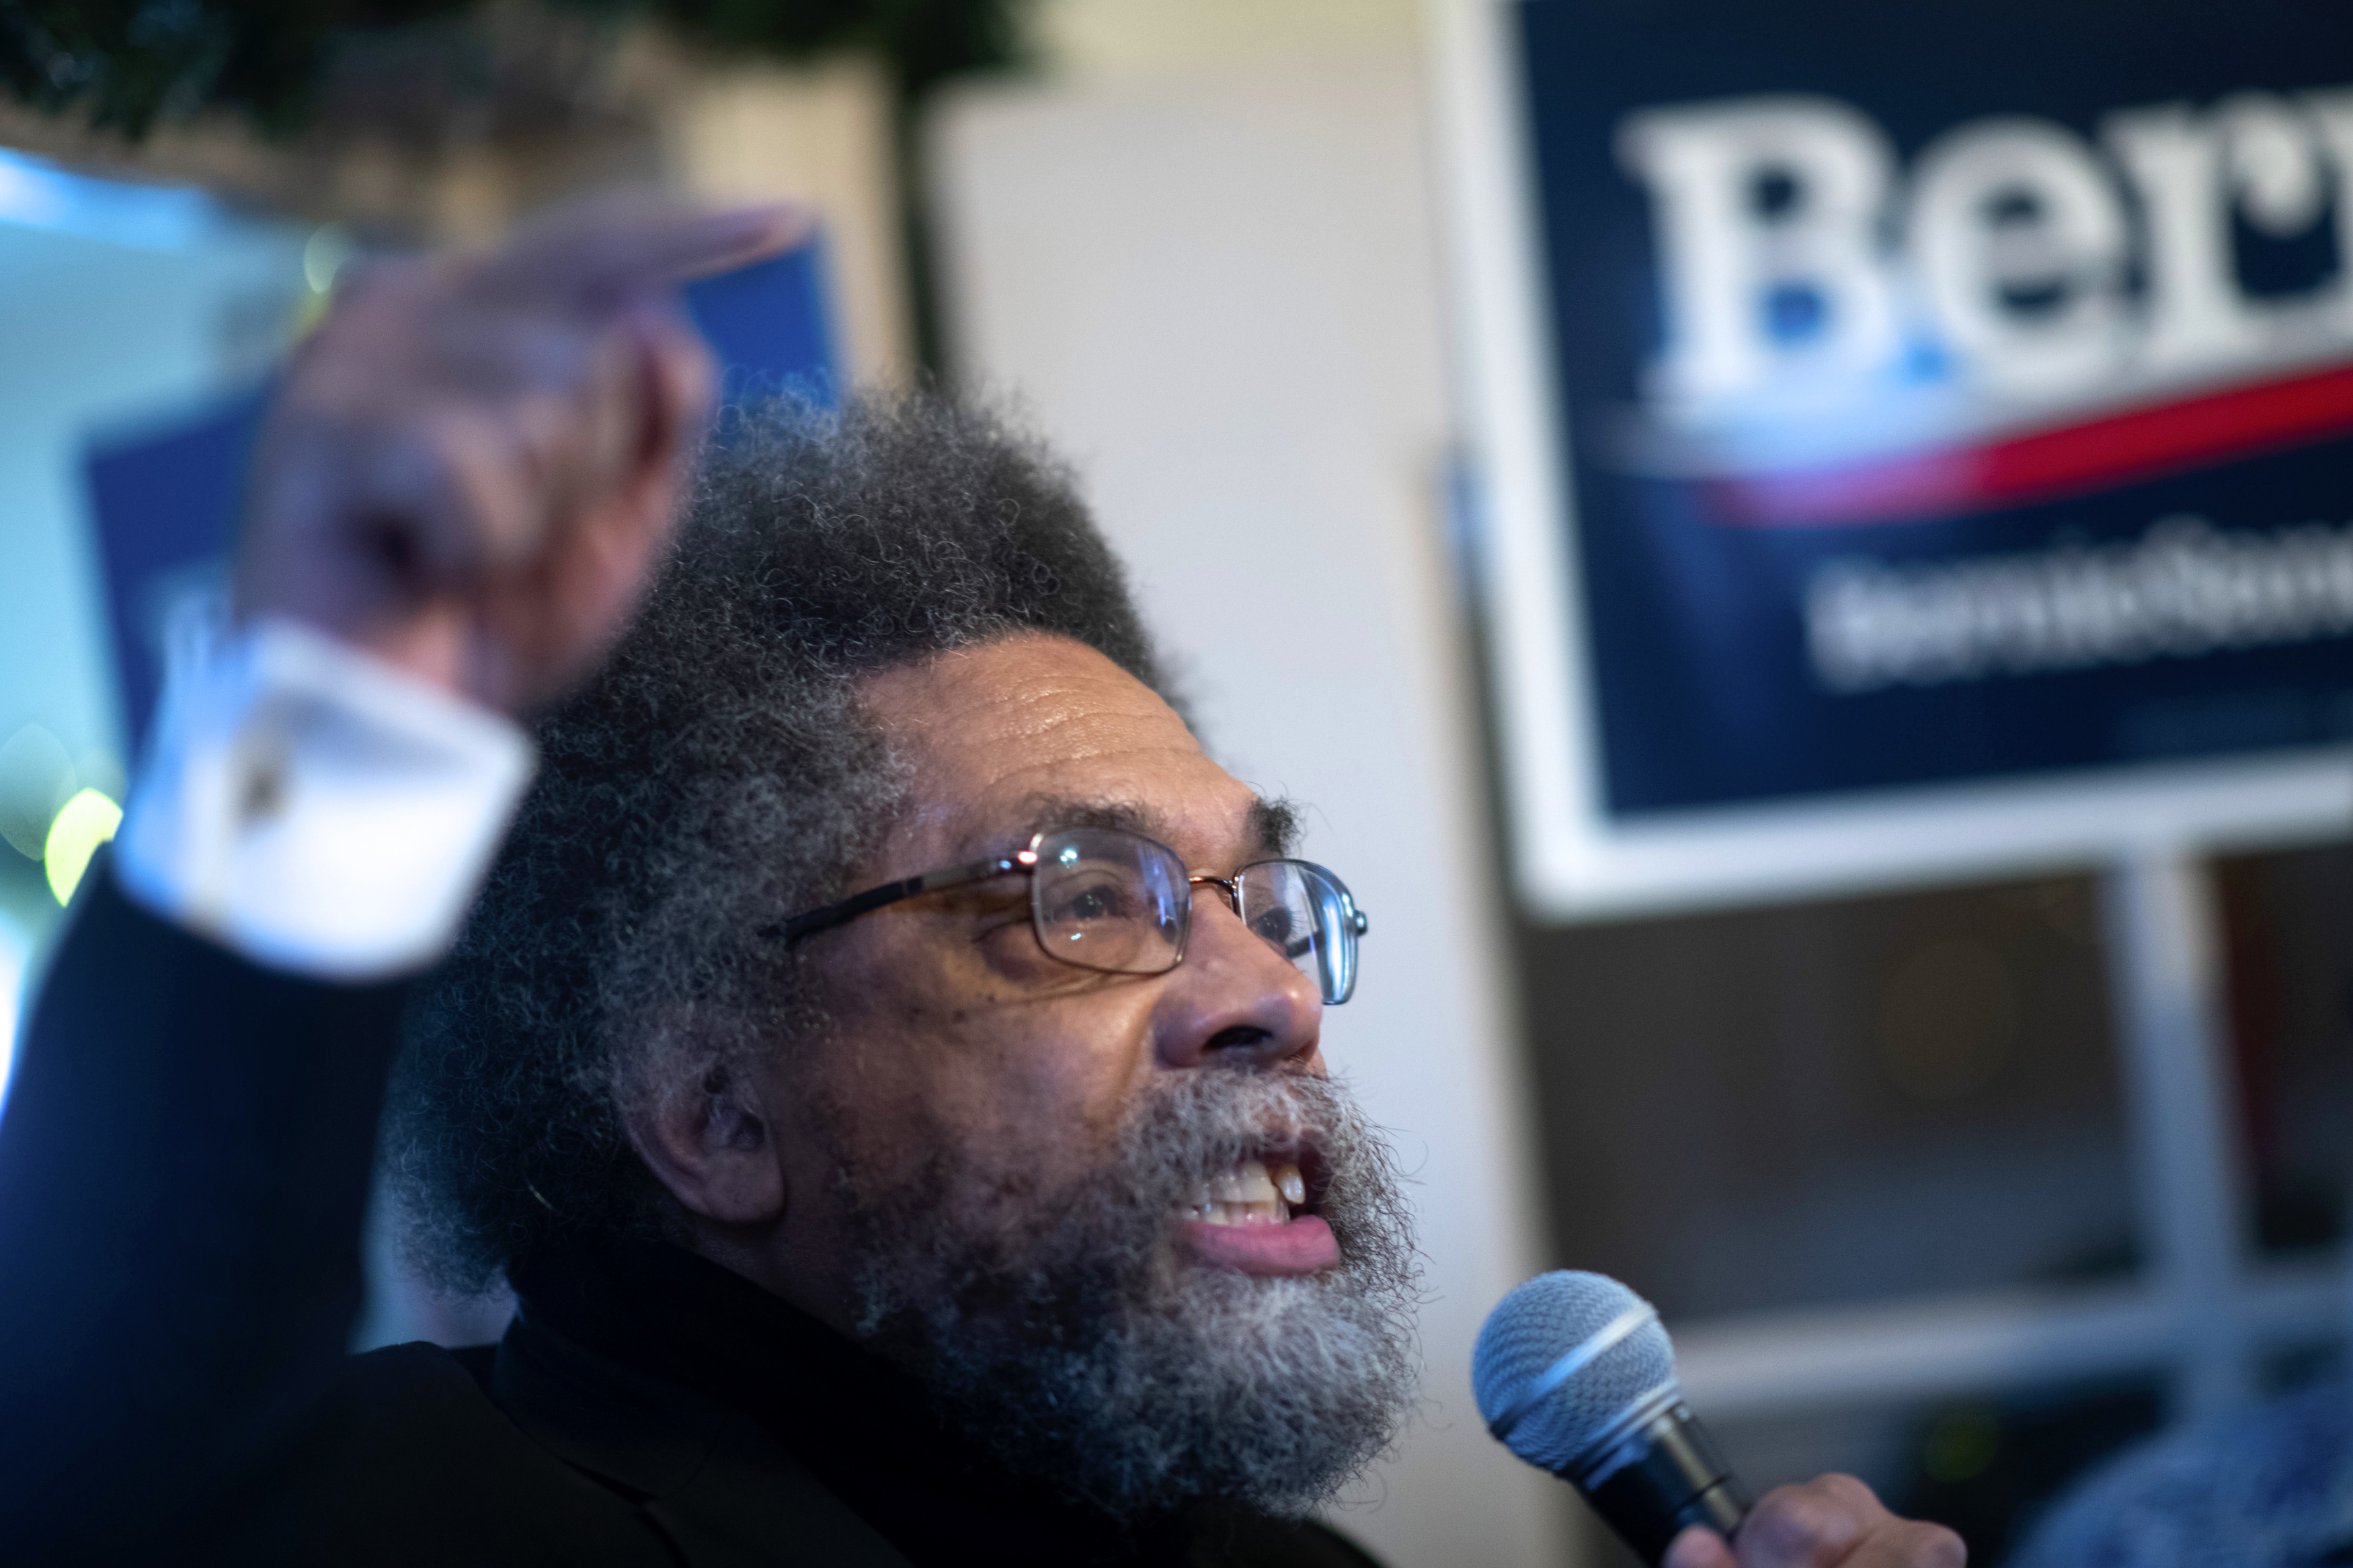 Academic Cornel West, a supporter of Democratic Presidential candidate Bernie Sanders, speaks during an event with local campaign volunteers at a field office located in a residence on February 1, 2020 in Waterloo, Iowa. On the penultimate day of campaign before the Iowa Caucus, Democratic Presidential candidates and their supporters are traversing the state to greet prospective voters.